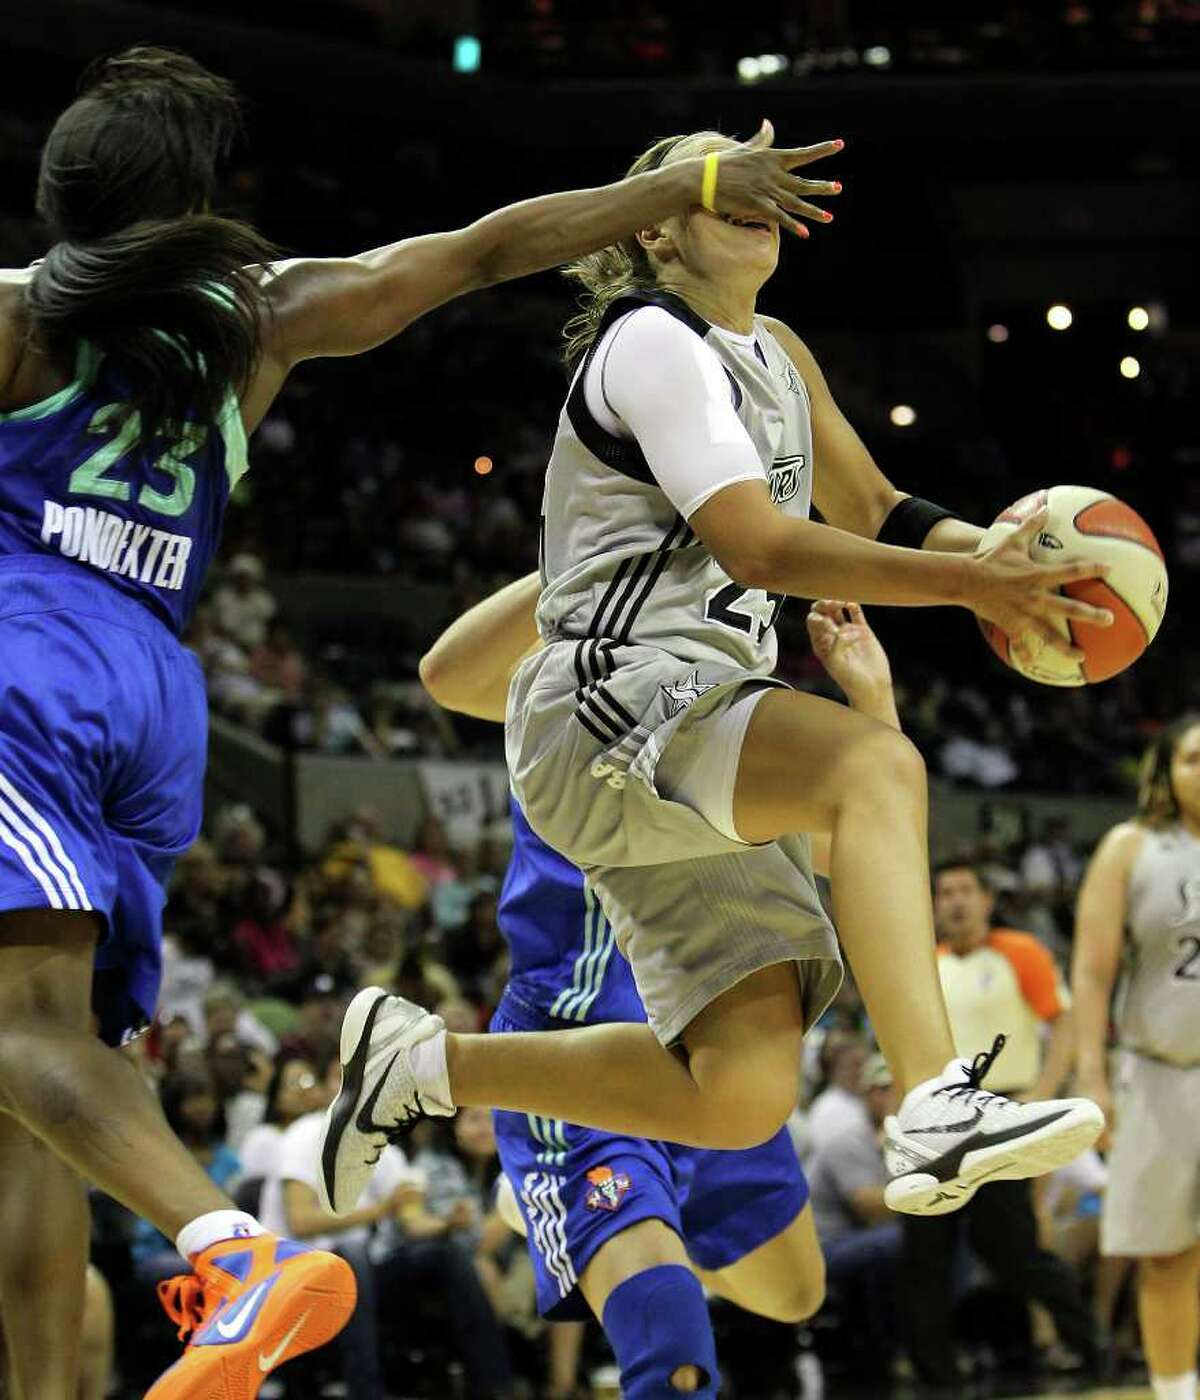 Silver Stars' Becky Hammon (right) gets a hand to the face while driving to the basket by New York Liberty's Cappie Pondexter (23) in the second half at the AT&T Center on Friday, July 8, 2011. Silver Stars lose to Liberty, 73-76. Kin Man Hui/kmhui@express-news.net